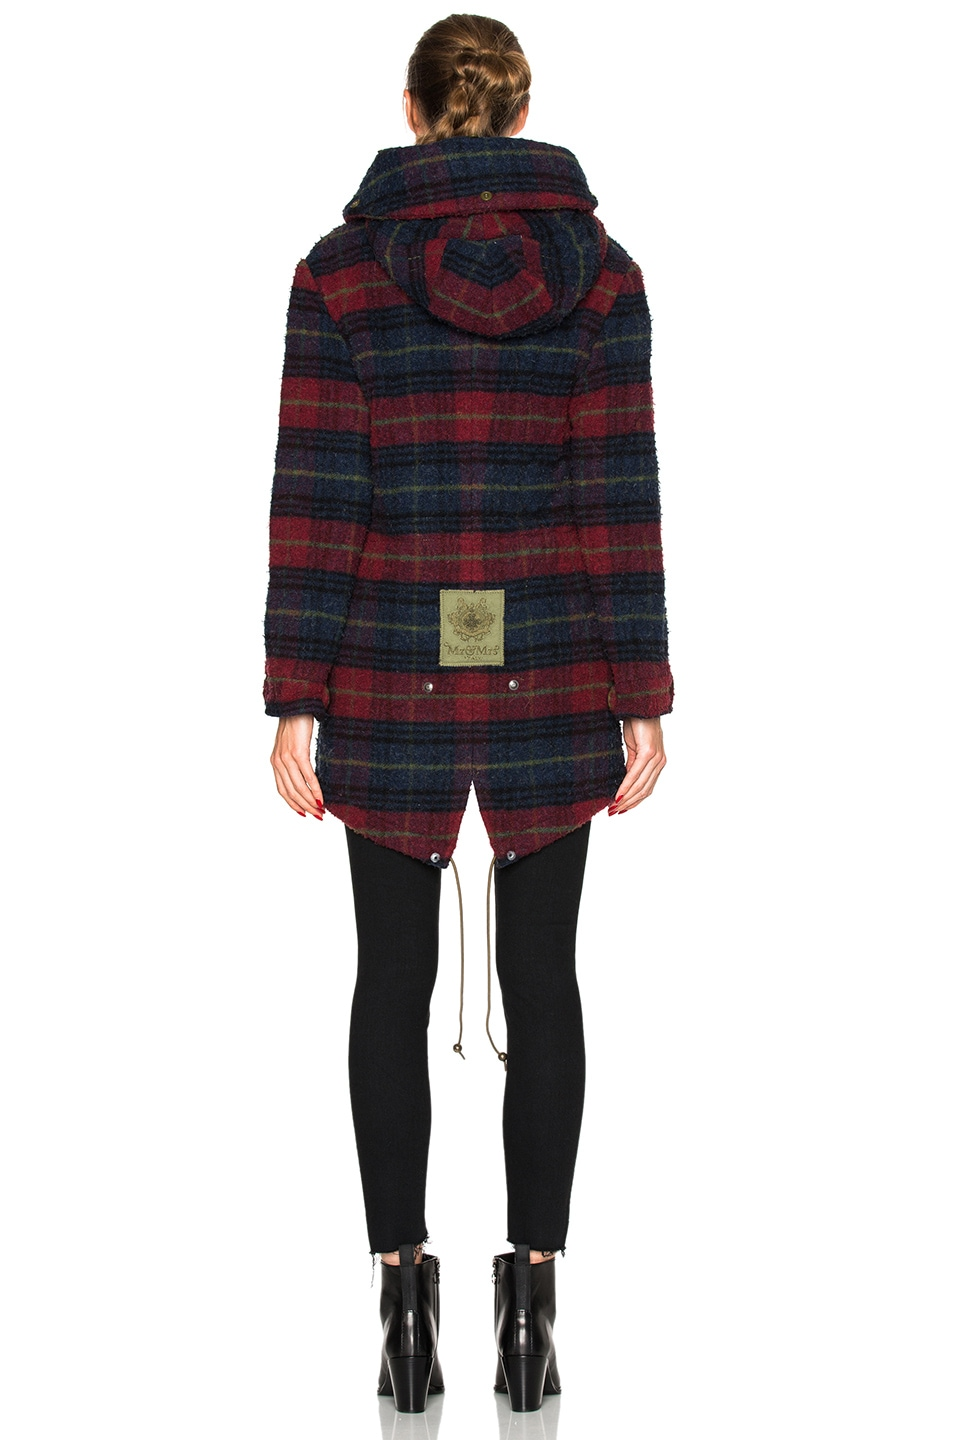 Image 5 of Mr & Mrs Italy Midi Parka Jacket in Plaid